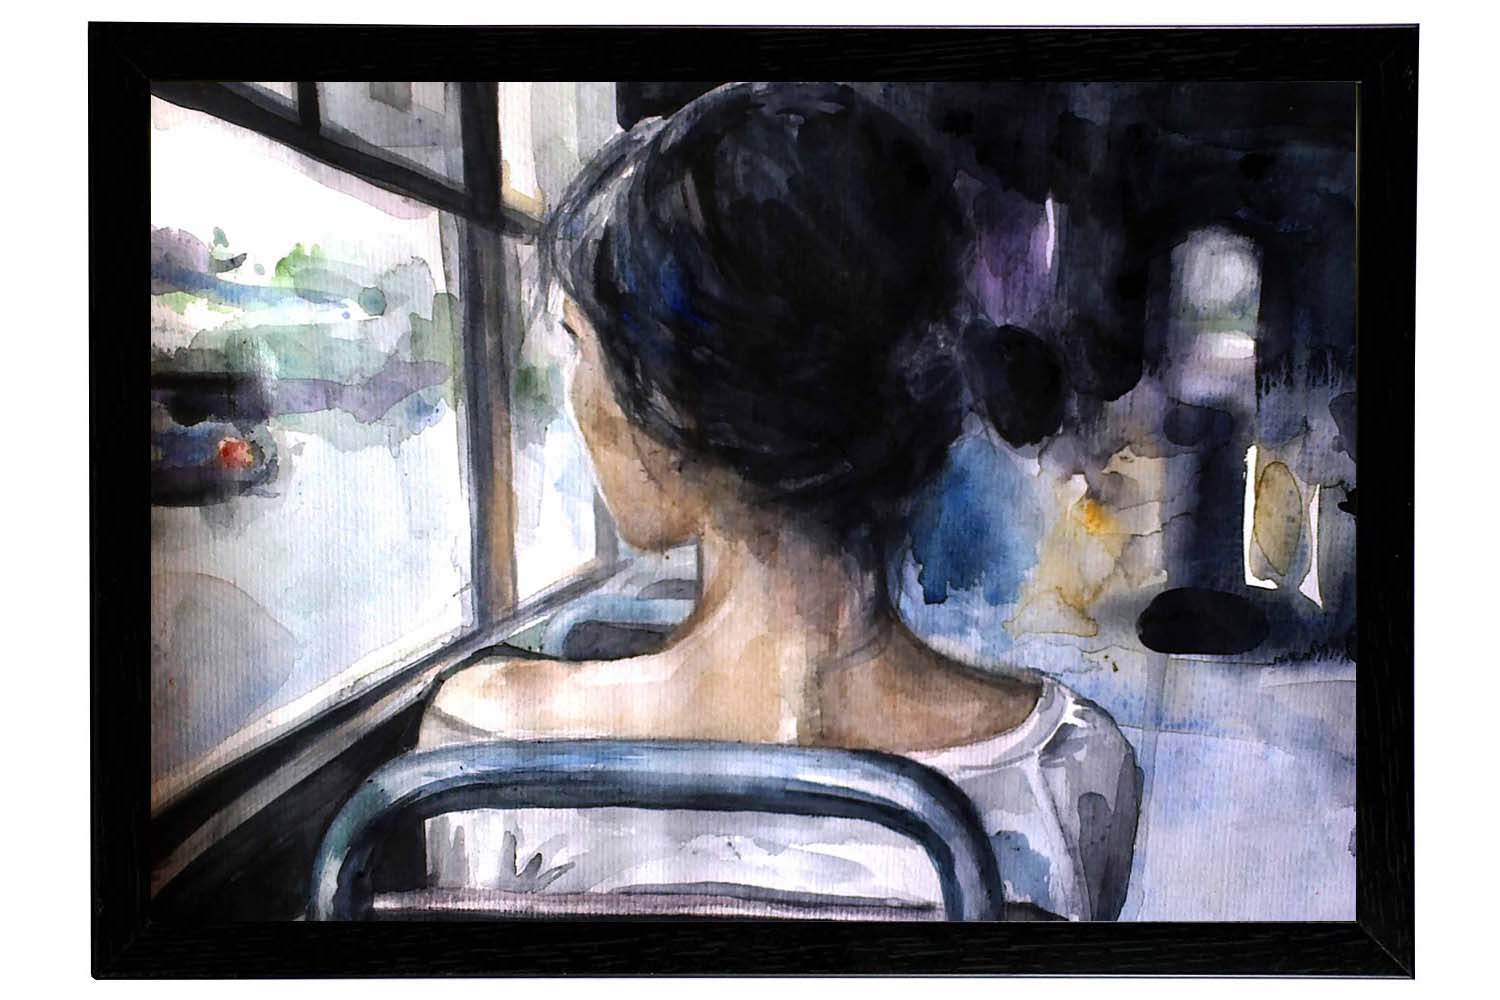 Alone girl painting